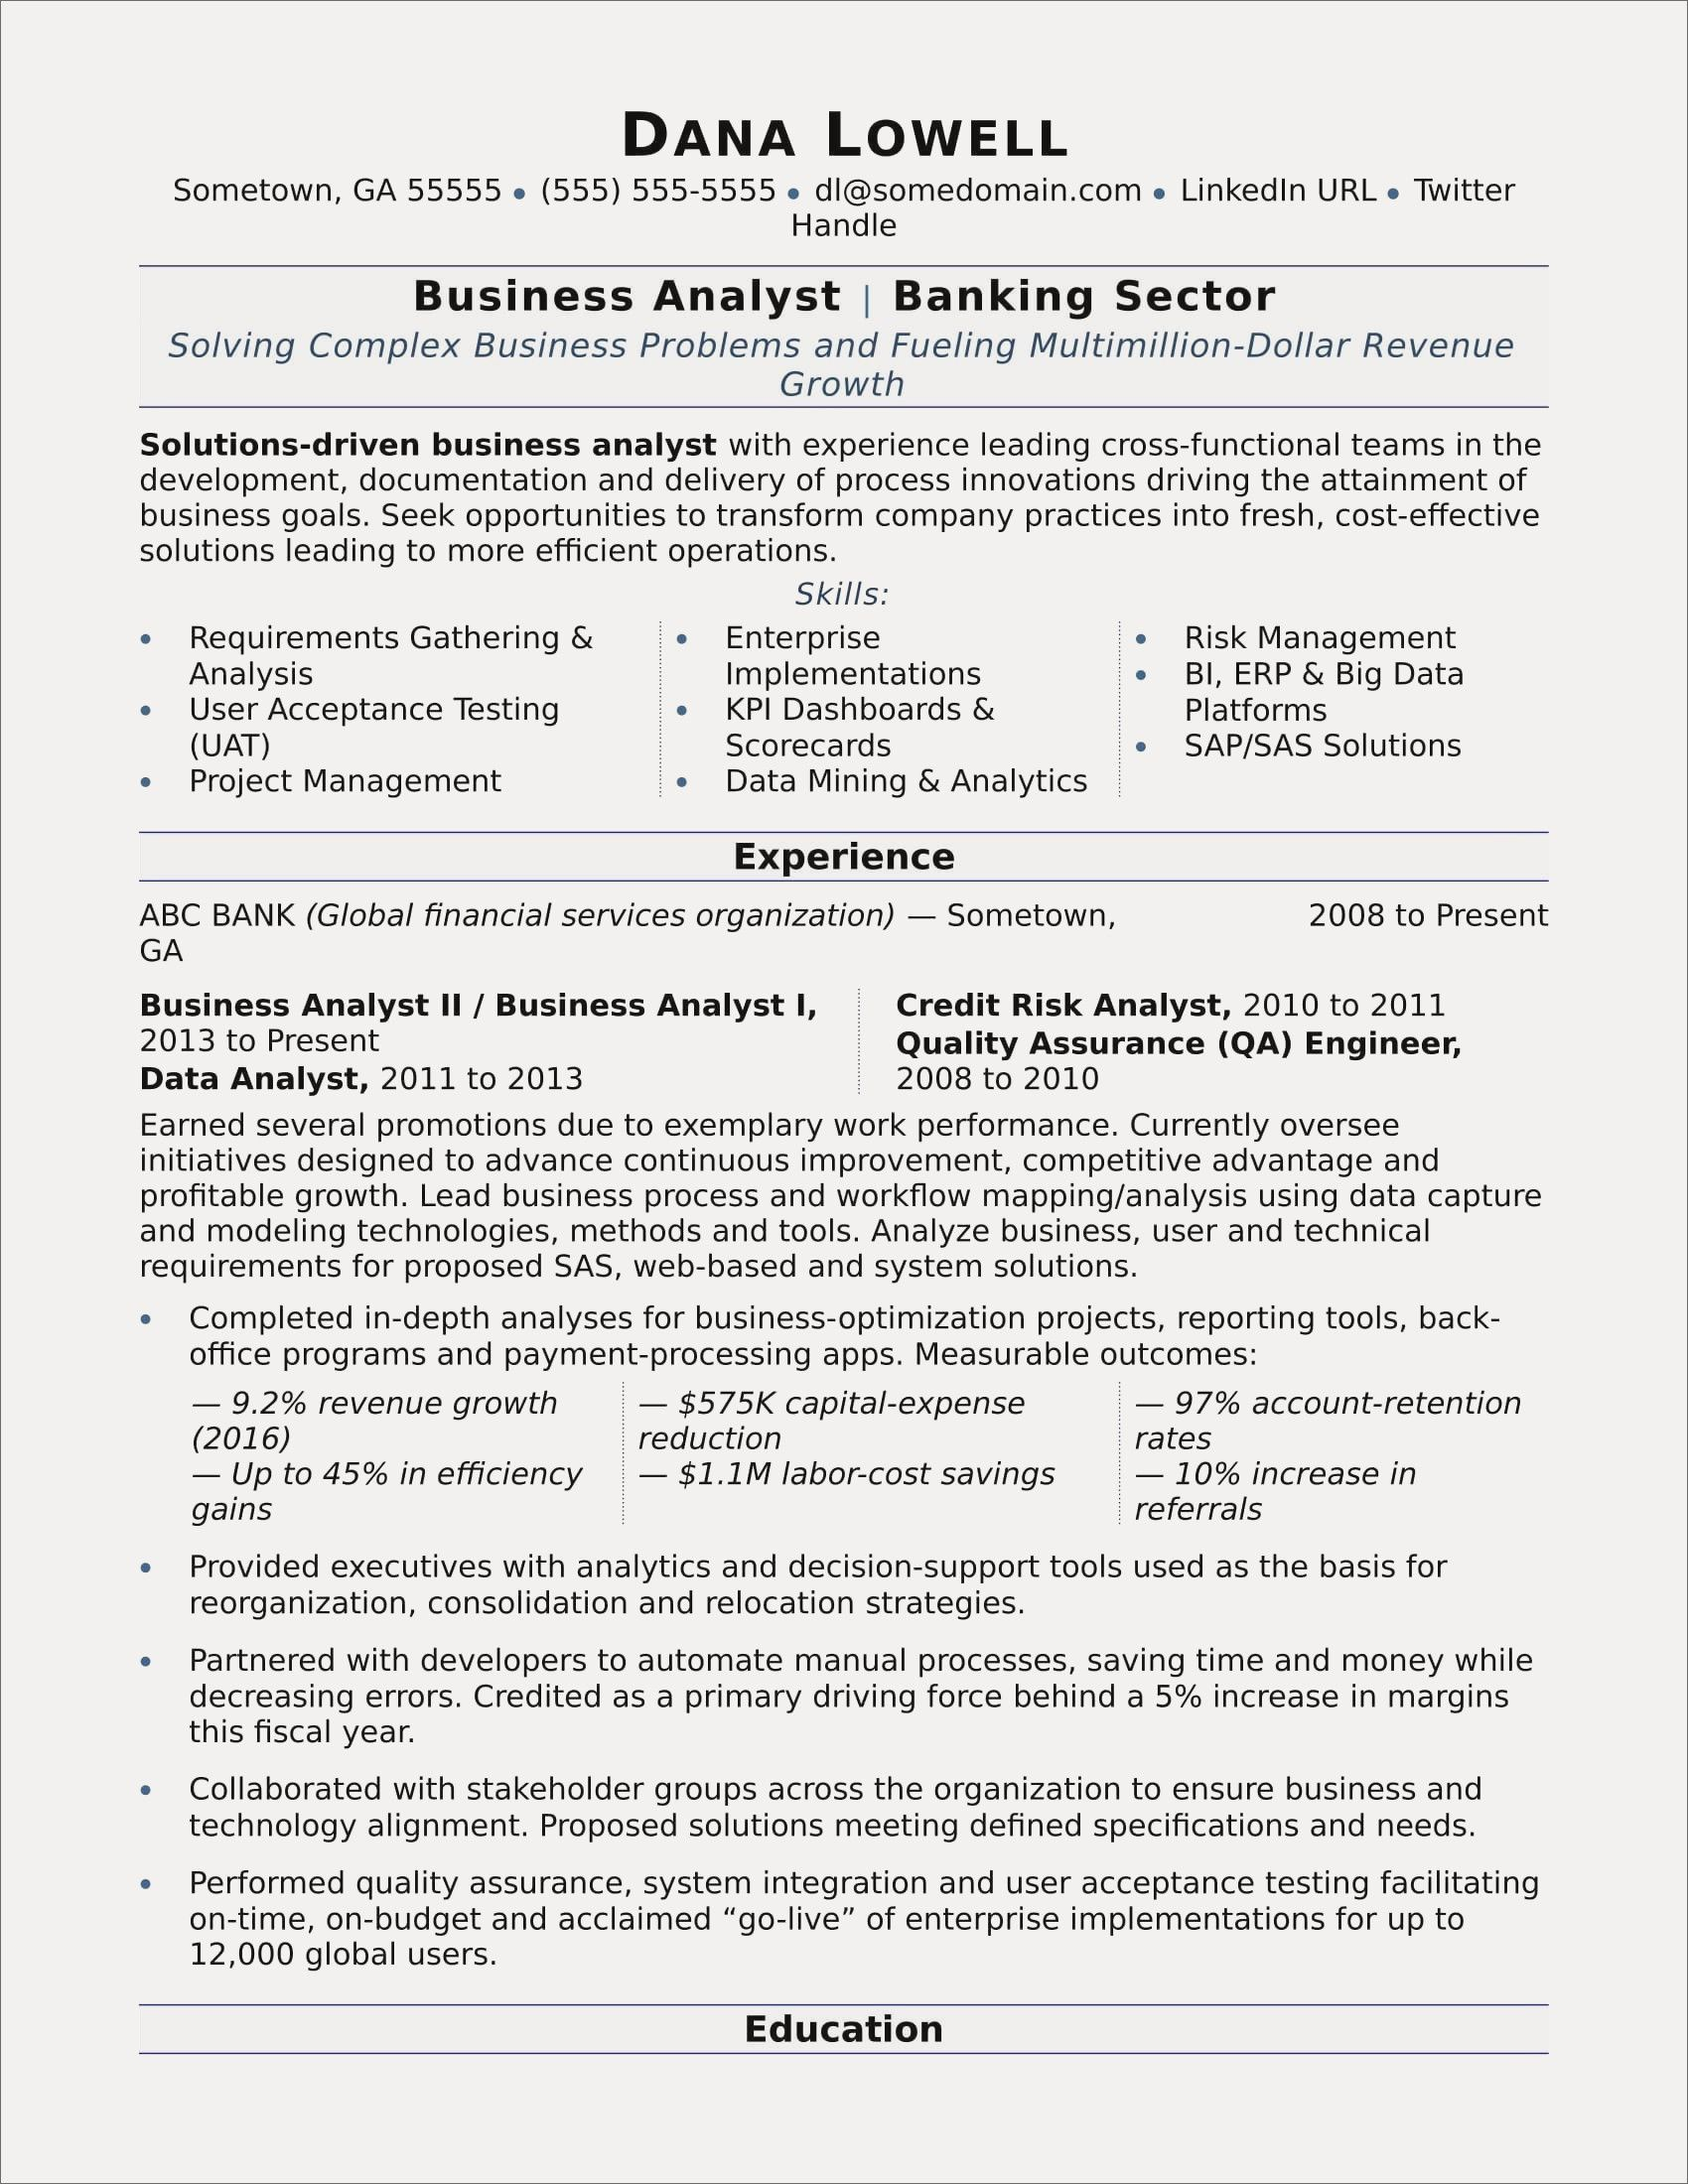 elegant stock of montessori teacher resume examples business analyst objective Resume Montessori Teacher Resume Objective